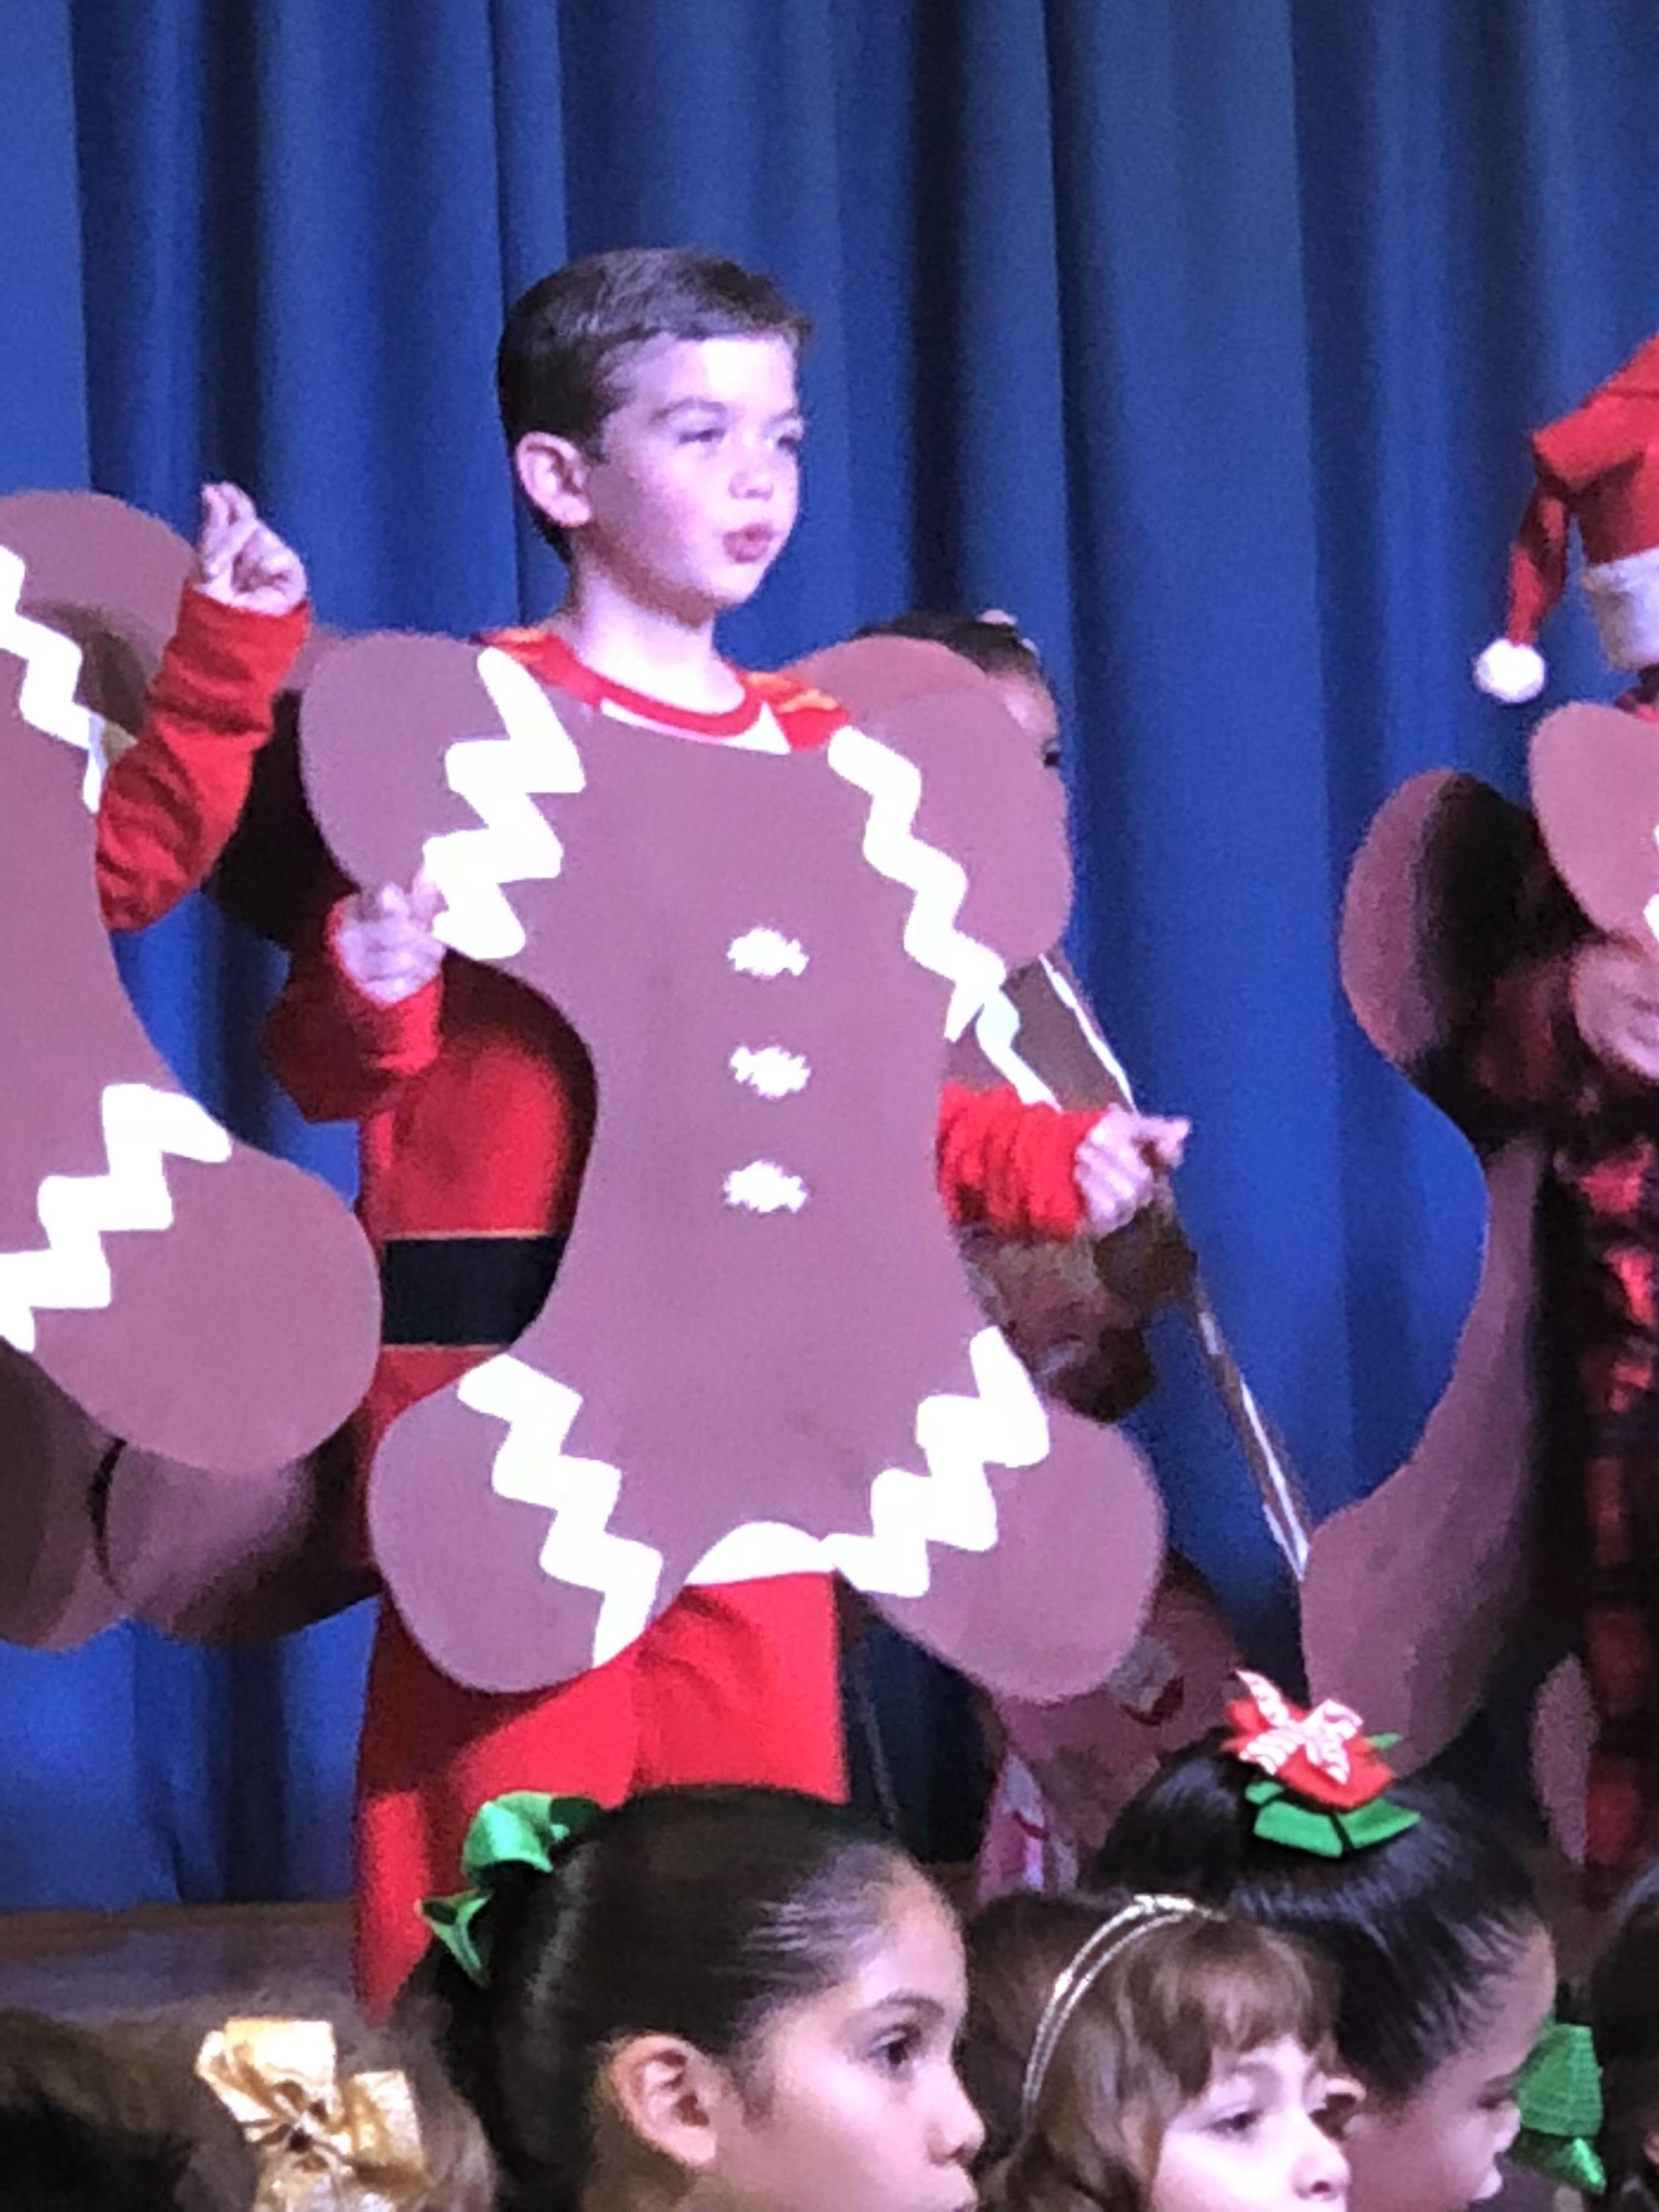 A little boy dressed as the gingerbread man.